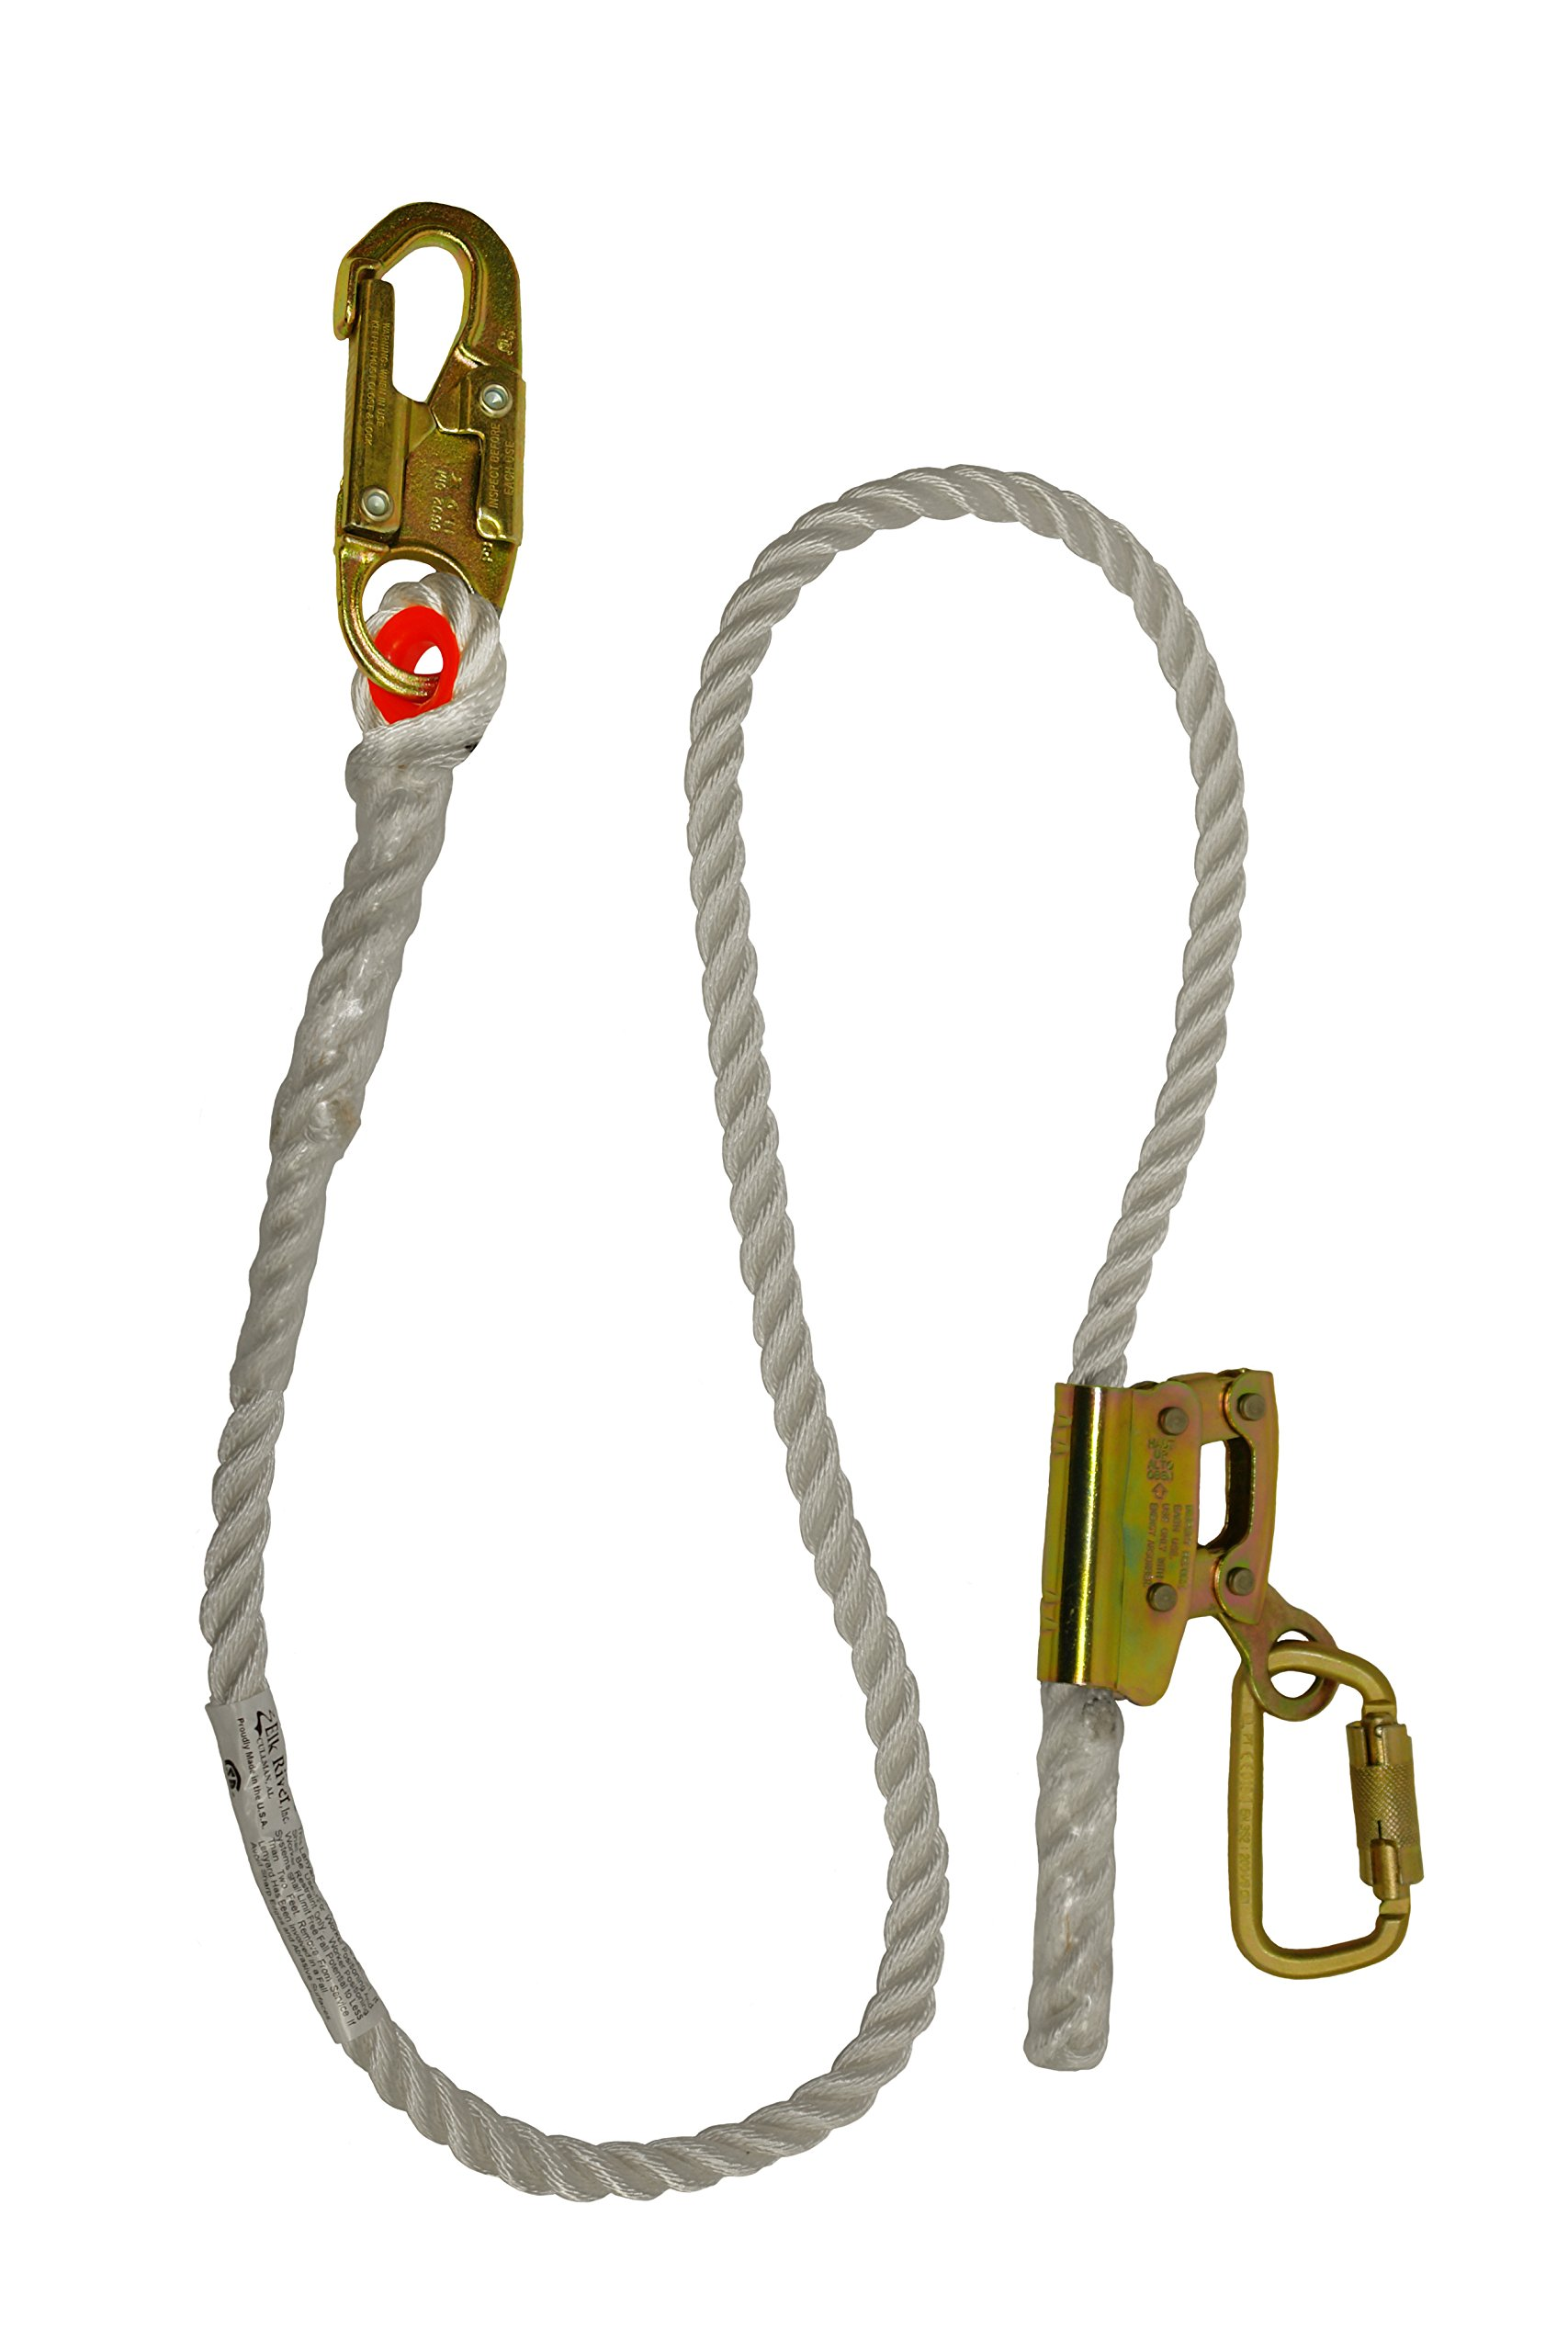 Elk River 34406 Quick-Adjustable Nylon Rope Positioning Lanyard with Carabiner and Zsnaphook, 3600 lbs Gate, 5/8'' Diameter x 6' Length